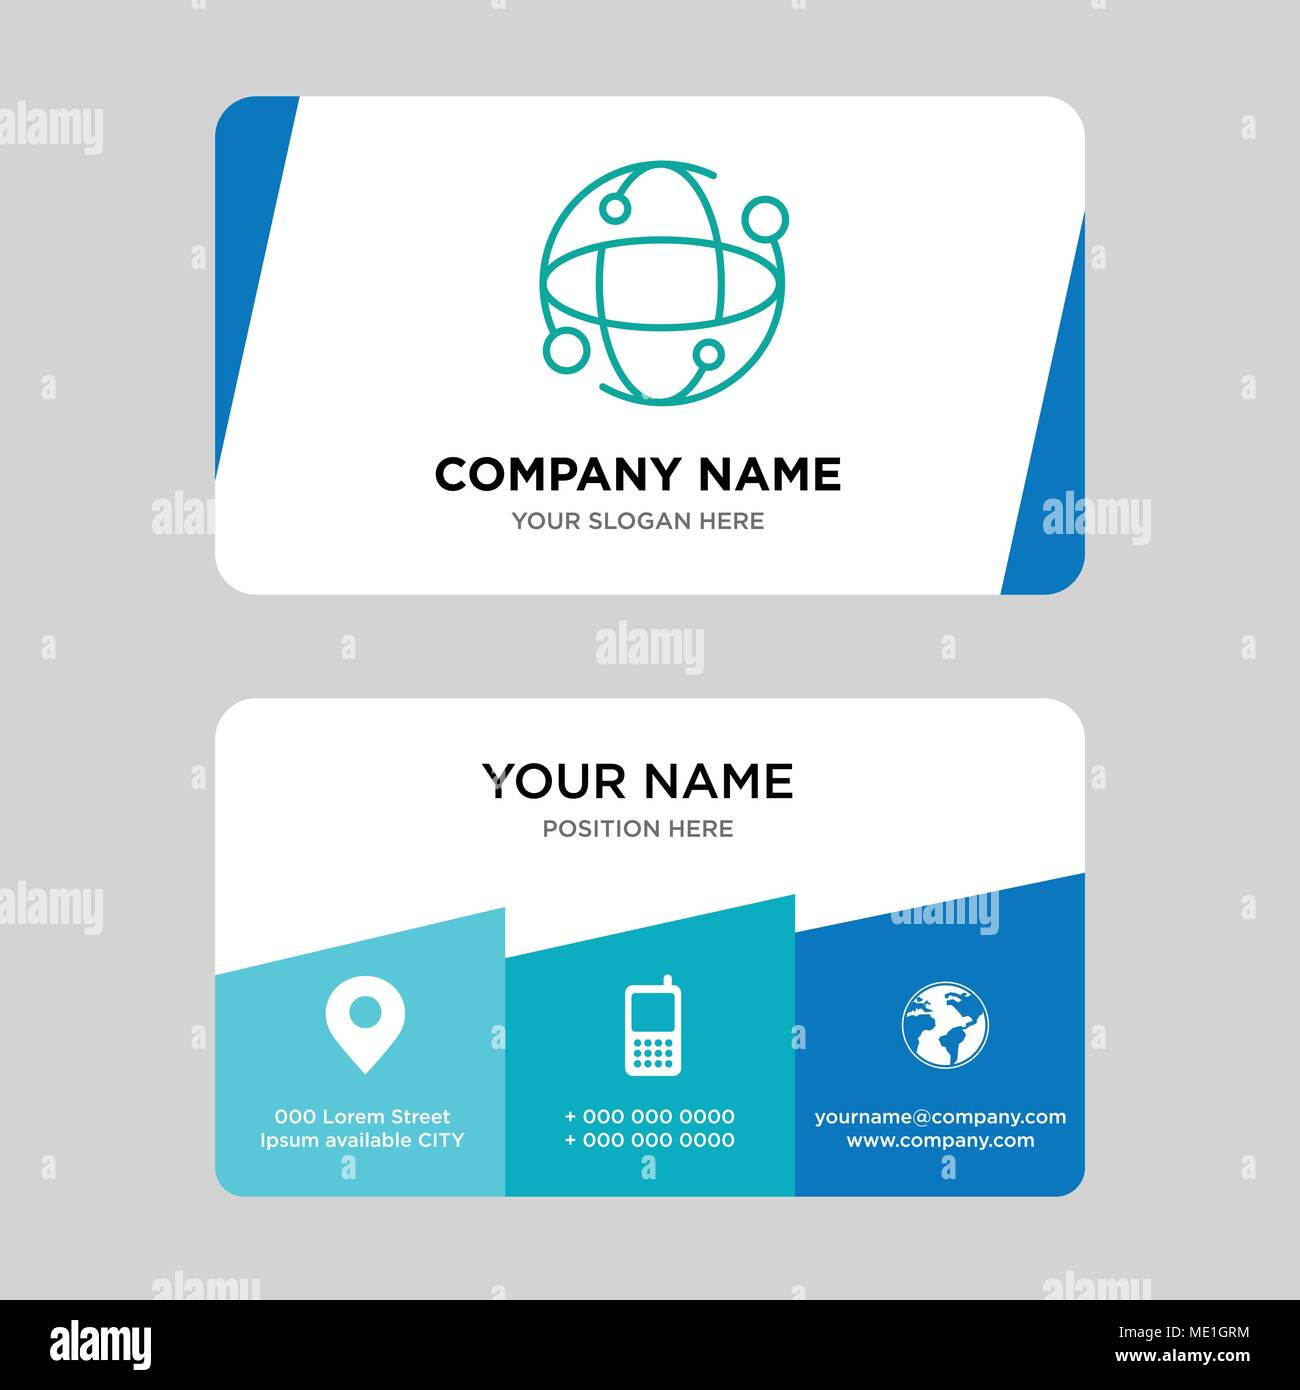 Earth globe business card design template visiting for your company earth globe business card design template visiting for your company modern creative and clean identity card vector illustration reheart Images